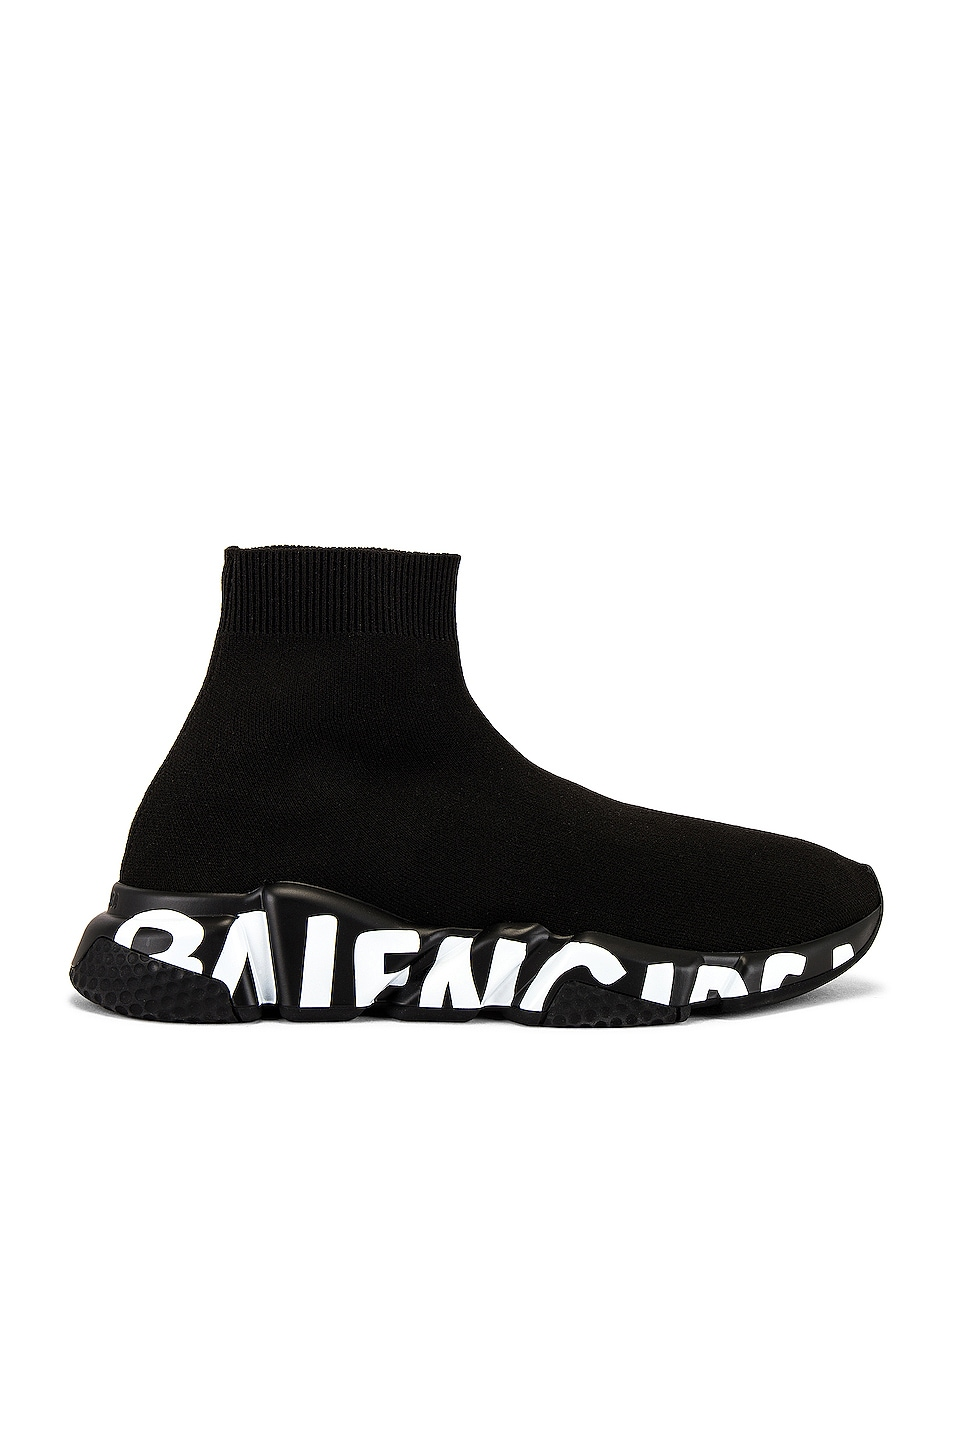 Image 1 of Balenciaga Speed Lt Graffiti Sneaker in Black